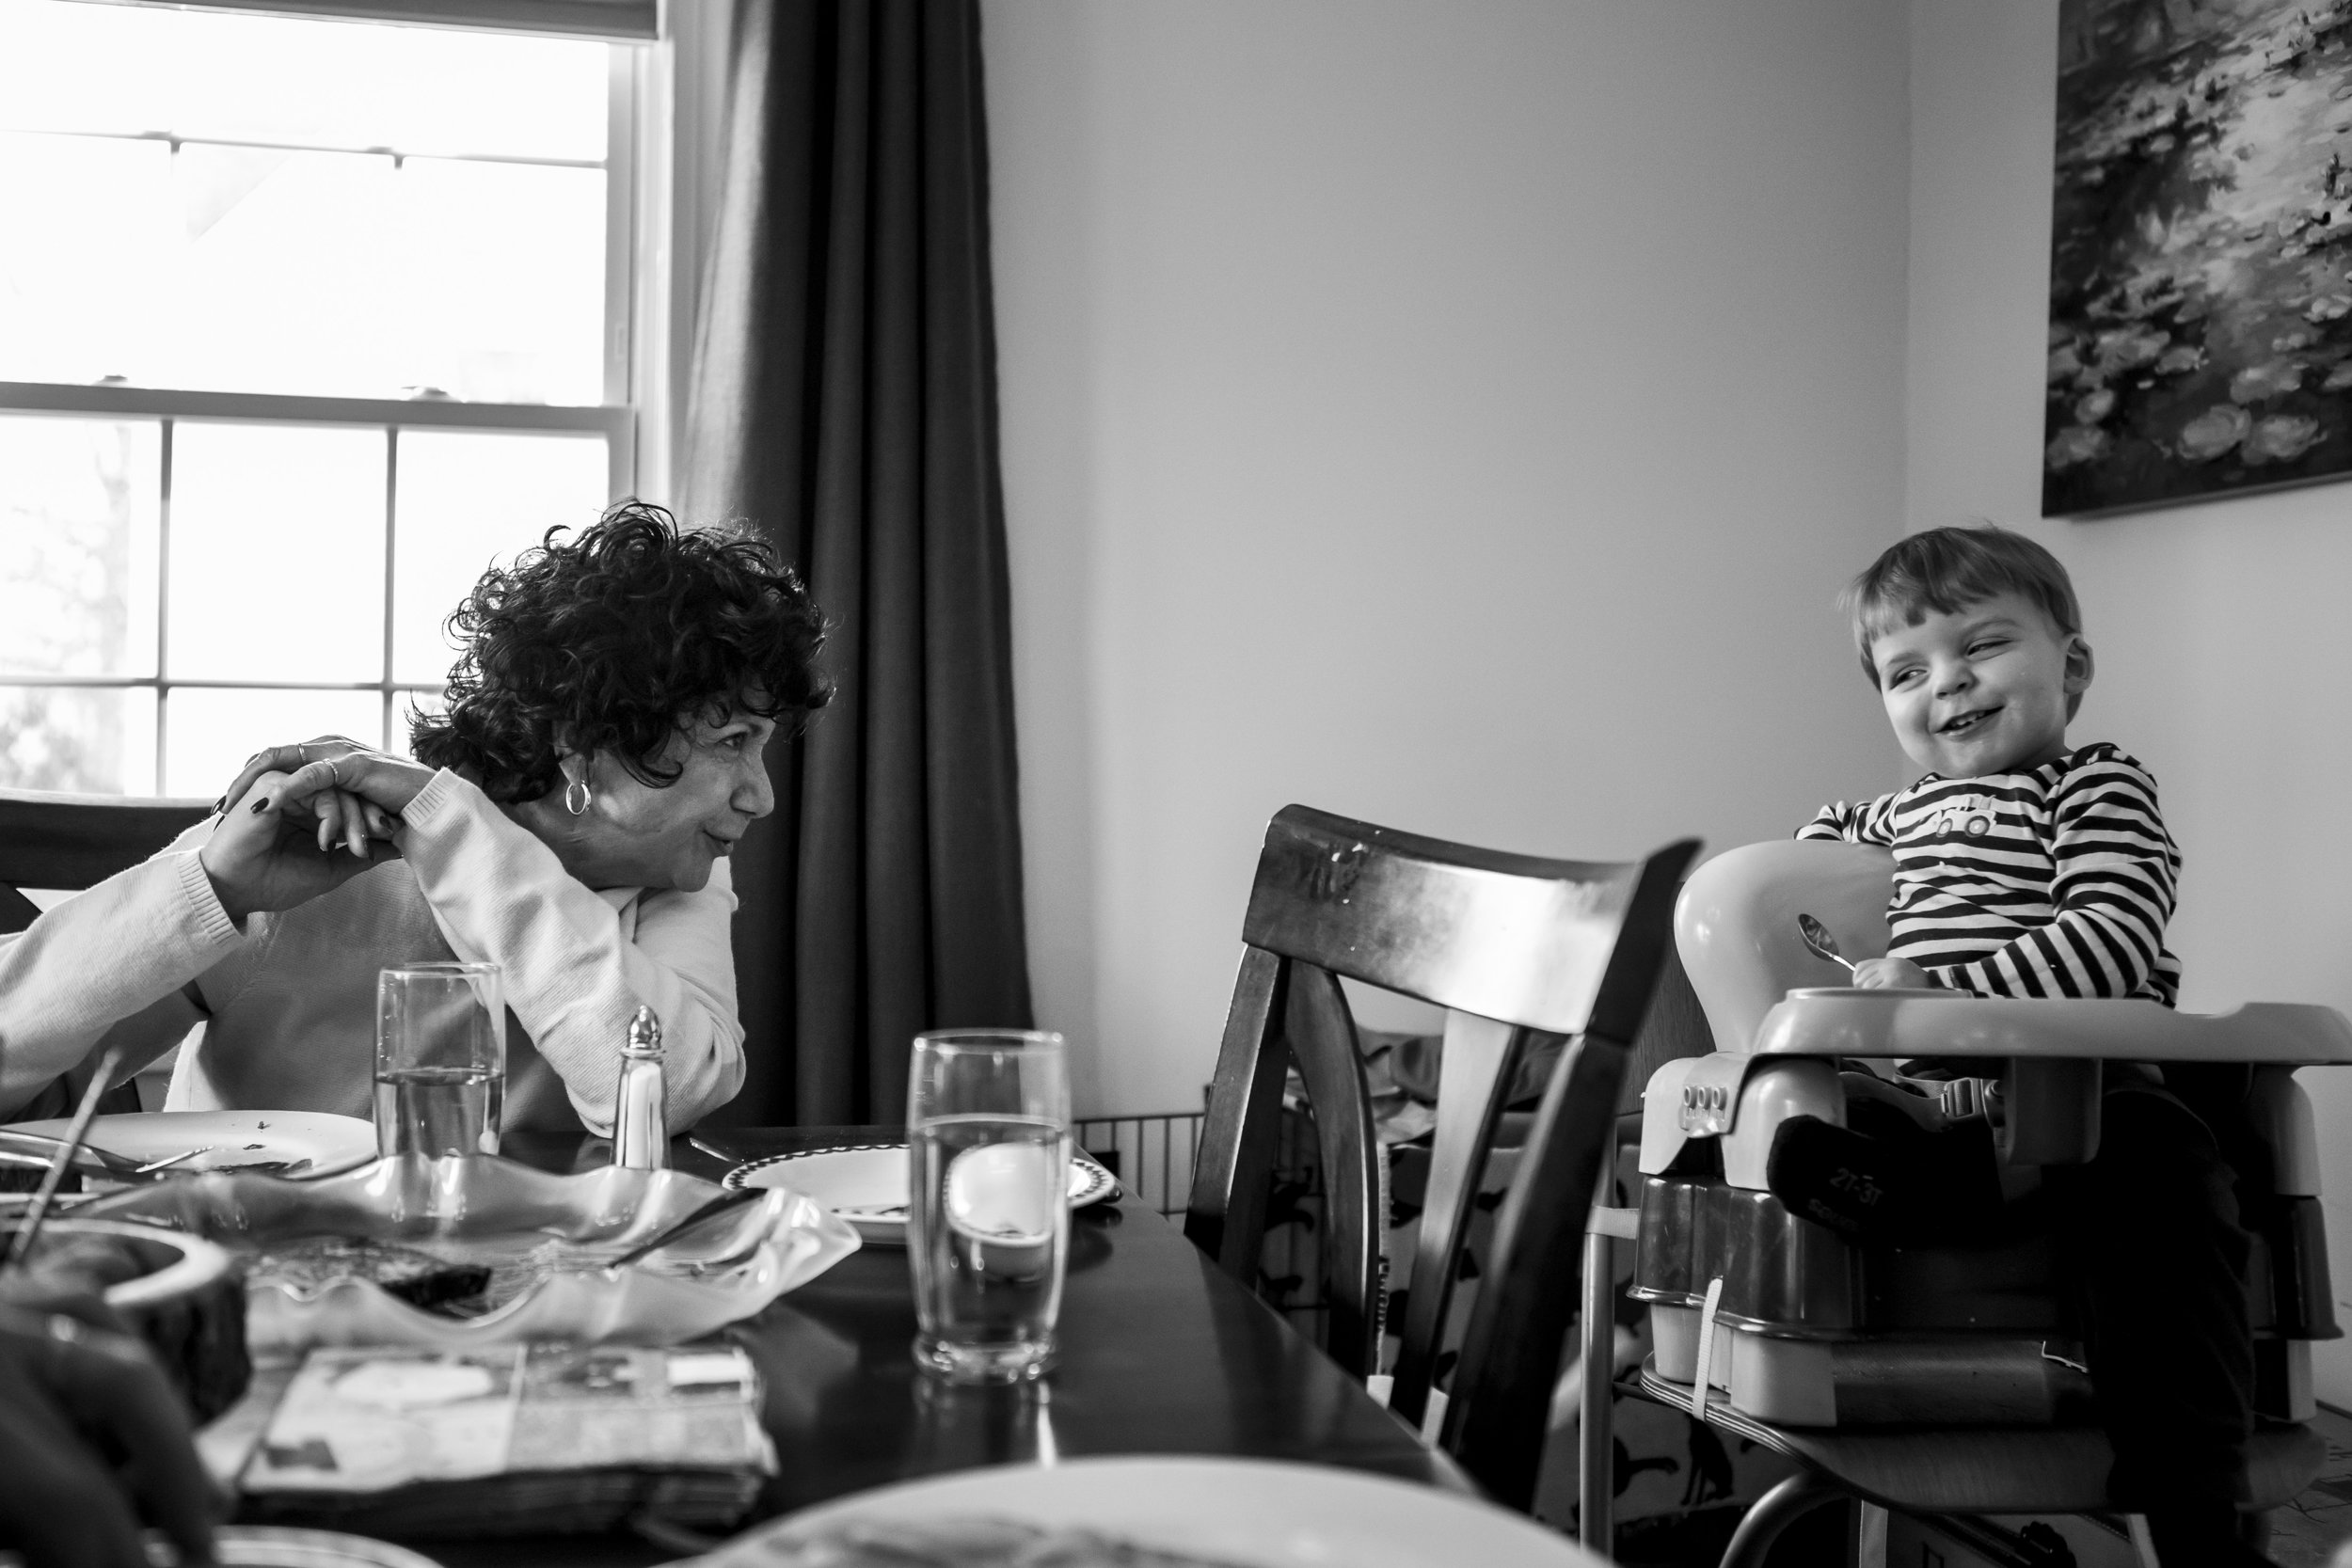 Connecticut photographer creates authentic family portraits in black and white, this candid image features grandmother and toddler striking at each other at the brunch table.